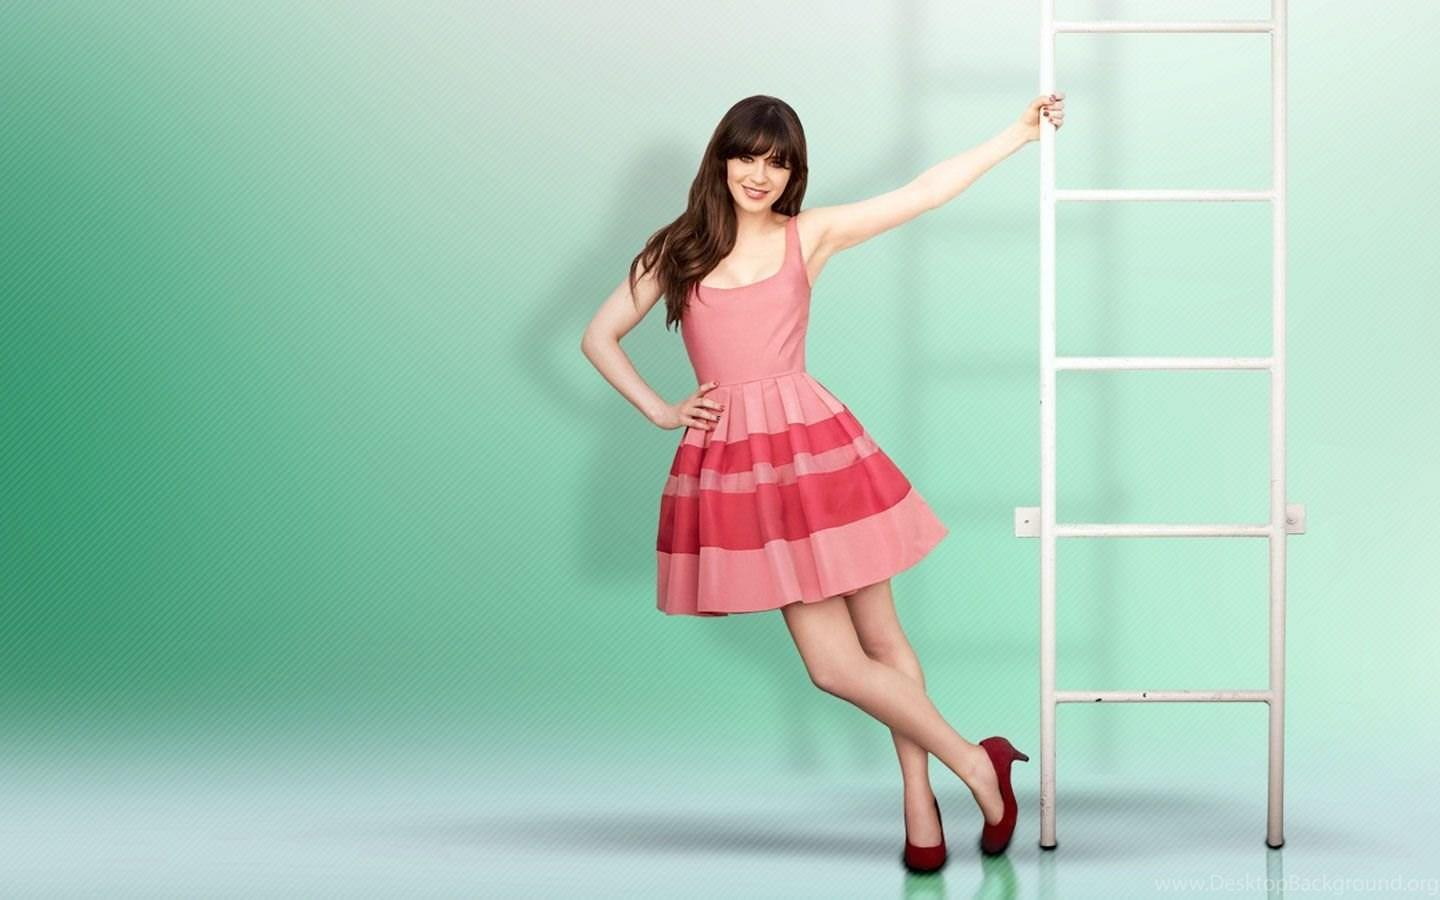 Zooey Deschanel Wallpapers HD Wallpaper Backgrounds Of Your Choice ...